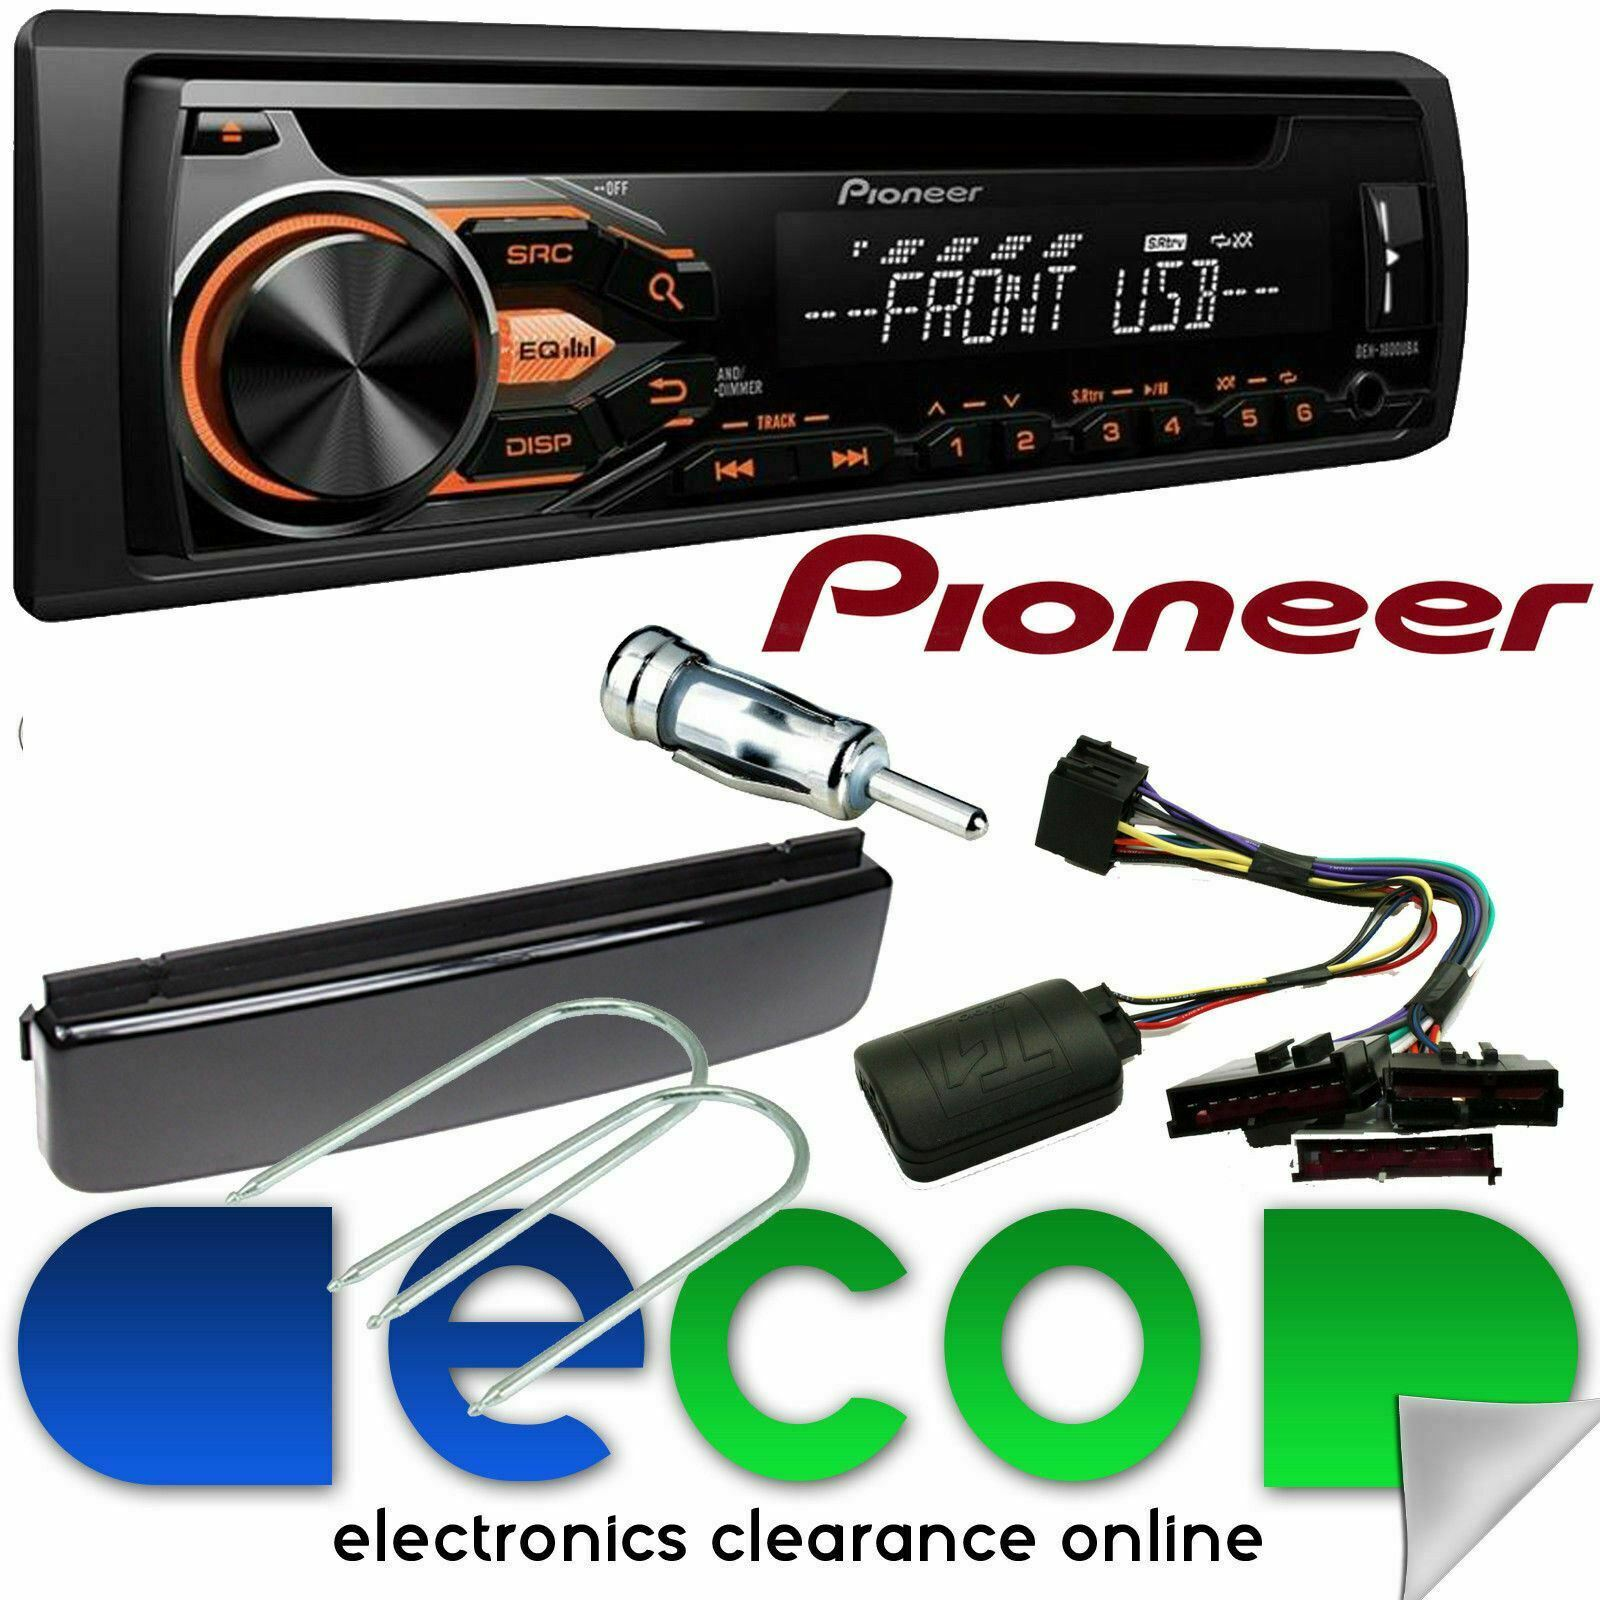 Ford Mondeo Mk2 Pioneer Cd Mp3 Usb Aux Car Stereo Steering Wheel 2007 Fusion Aftermarket Radio Upgrade Kit 1 Of 2free Shipping